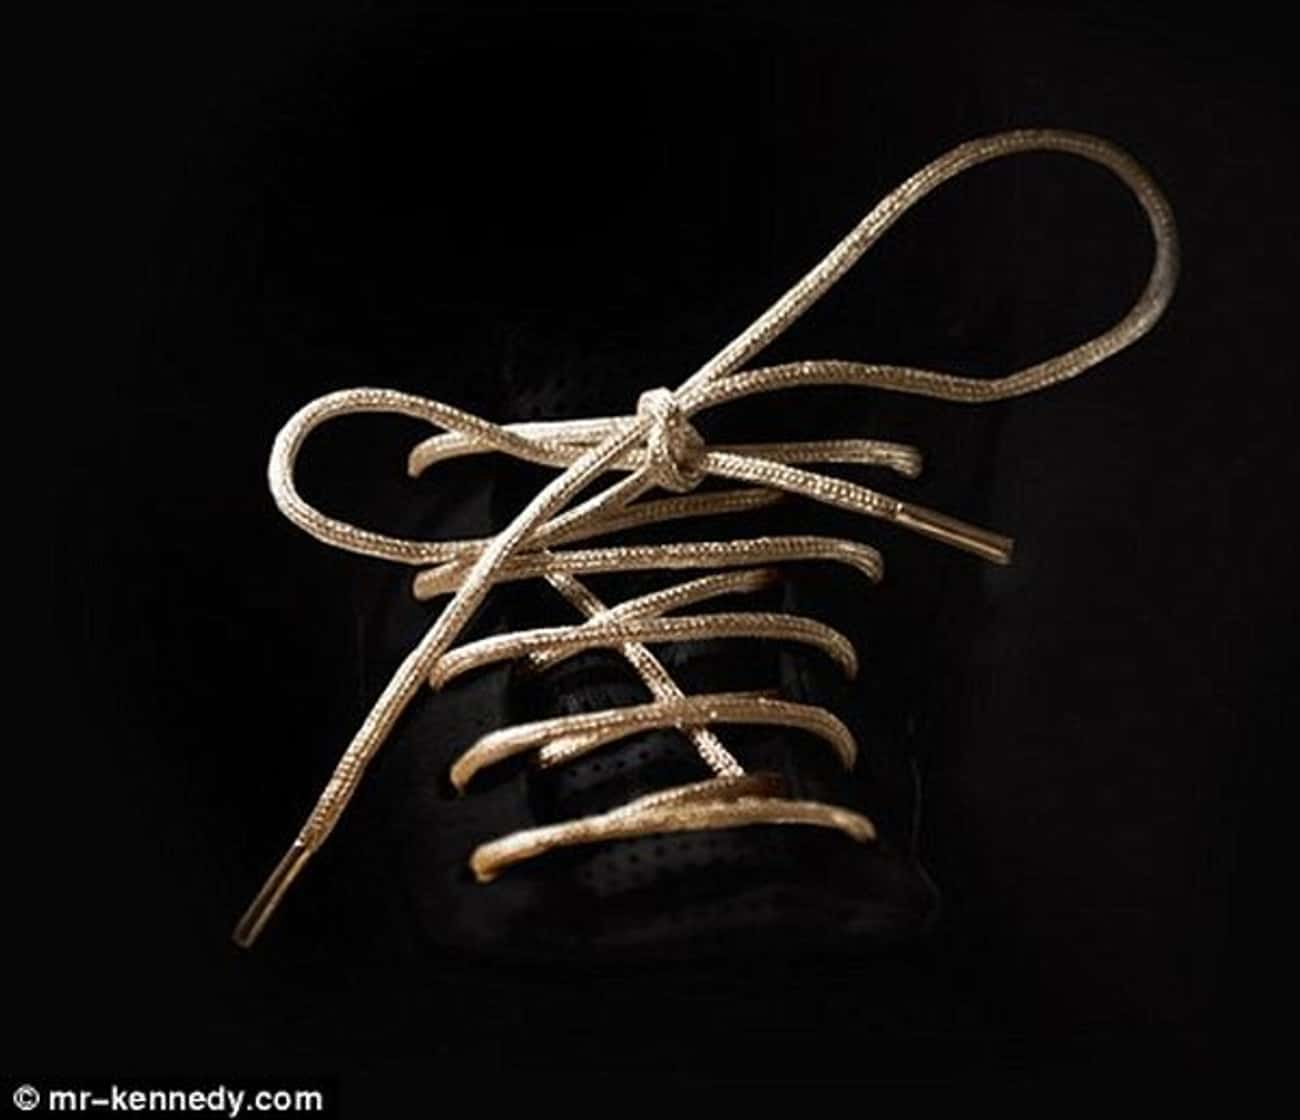 24 Karat Gold Shoelaces is listed (or ranked) 2 on the list The Most Expensive Christmas Gifts Money Can Buy